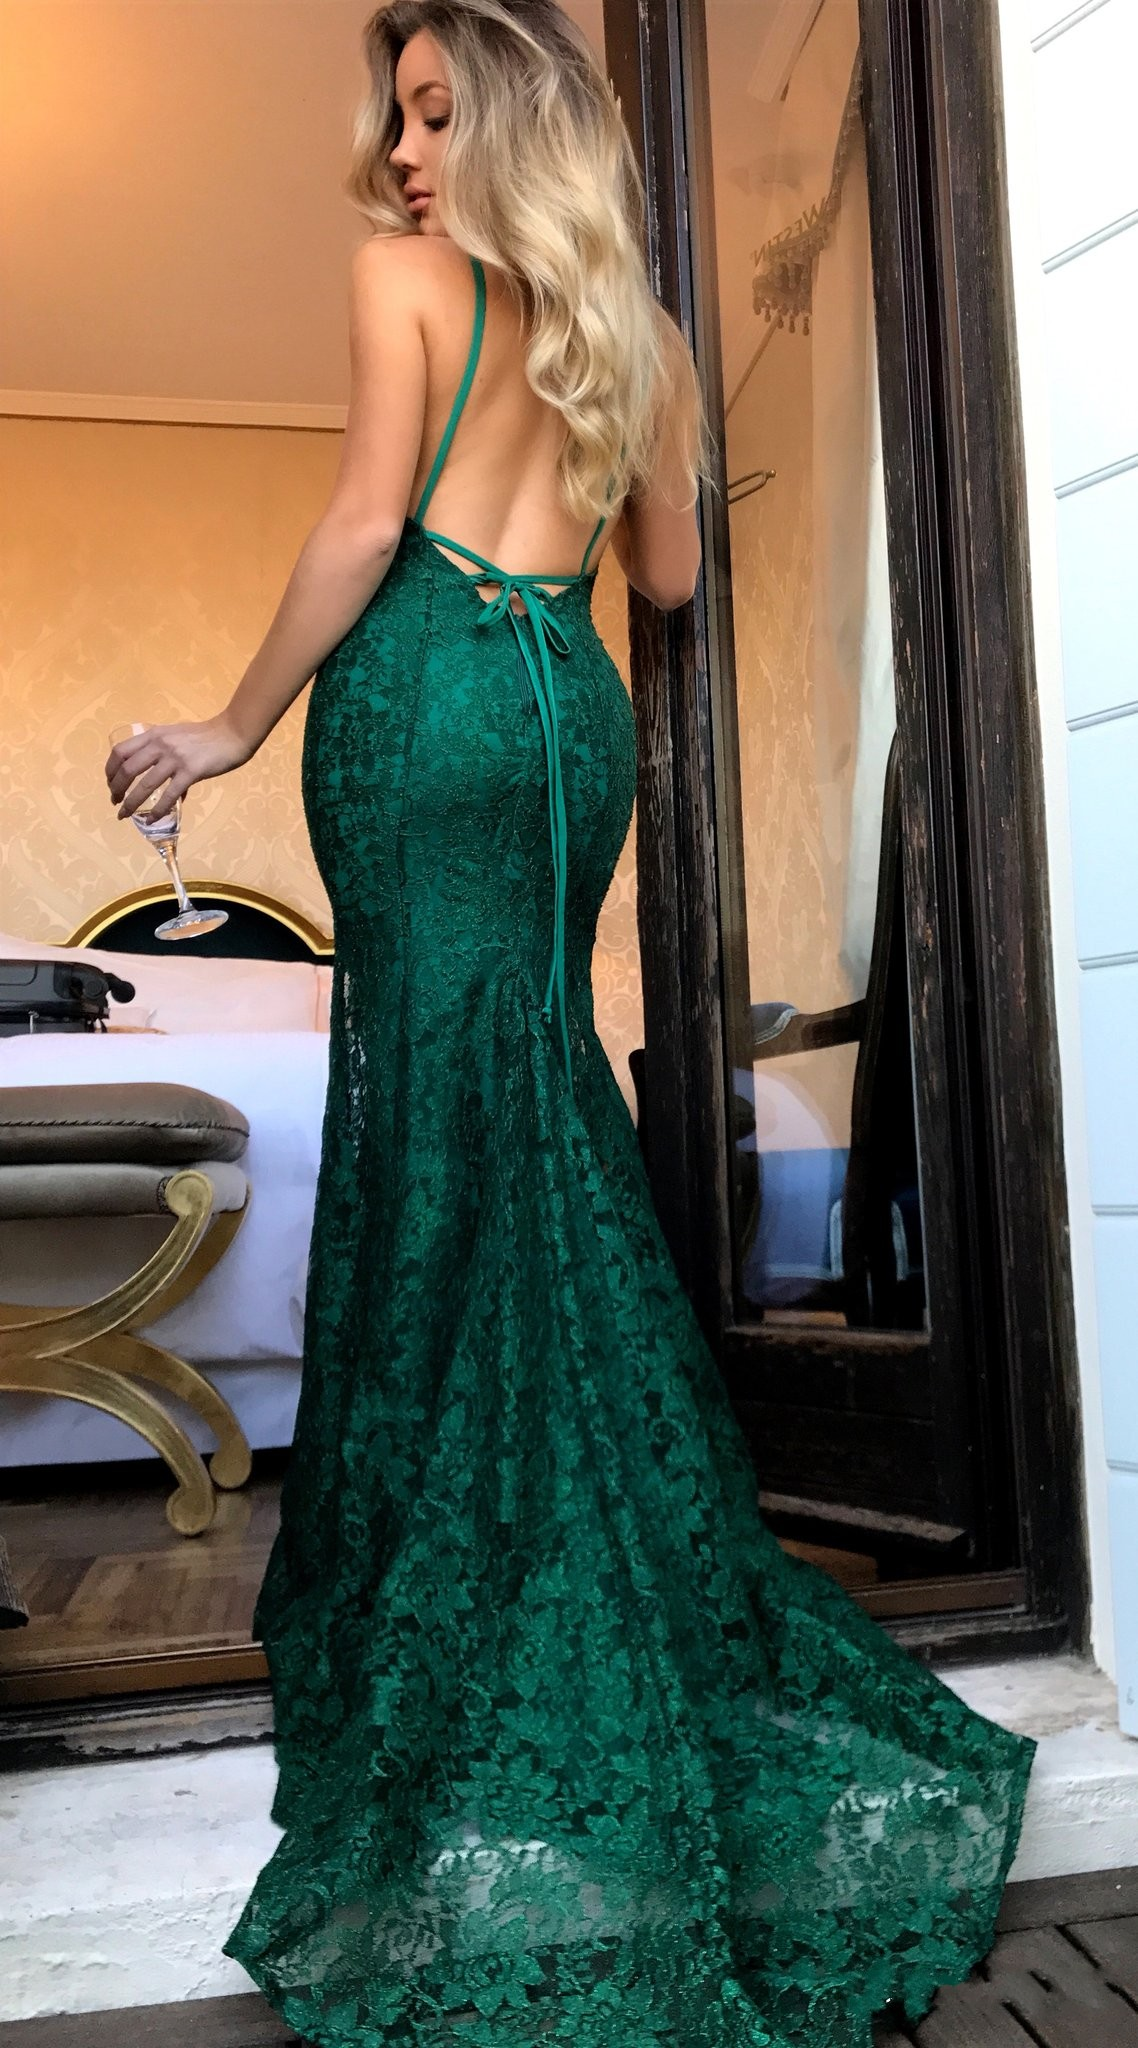 7442c1473c75 Emerald Green Lace Mermaid Long Prom Dresses With Low Cut Back ...